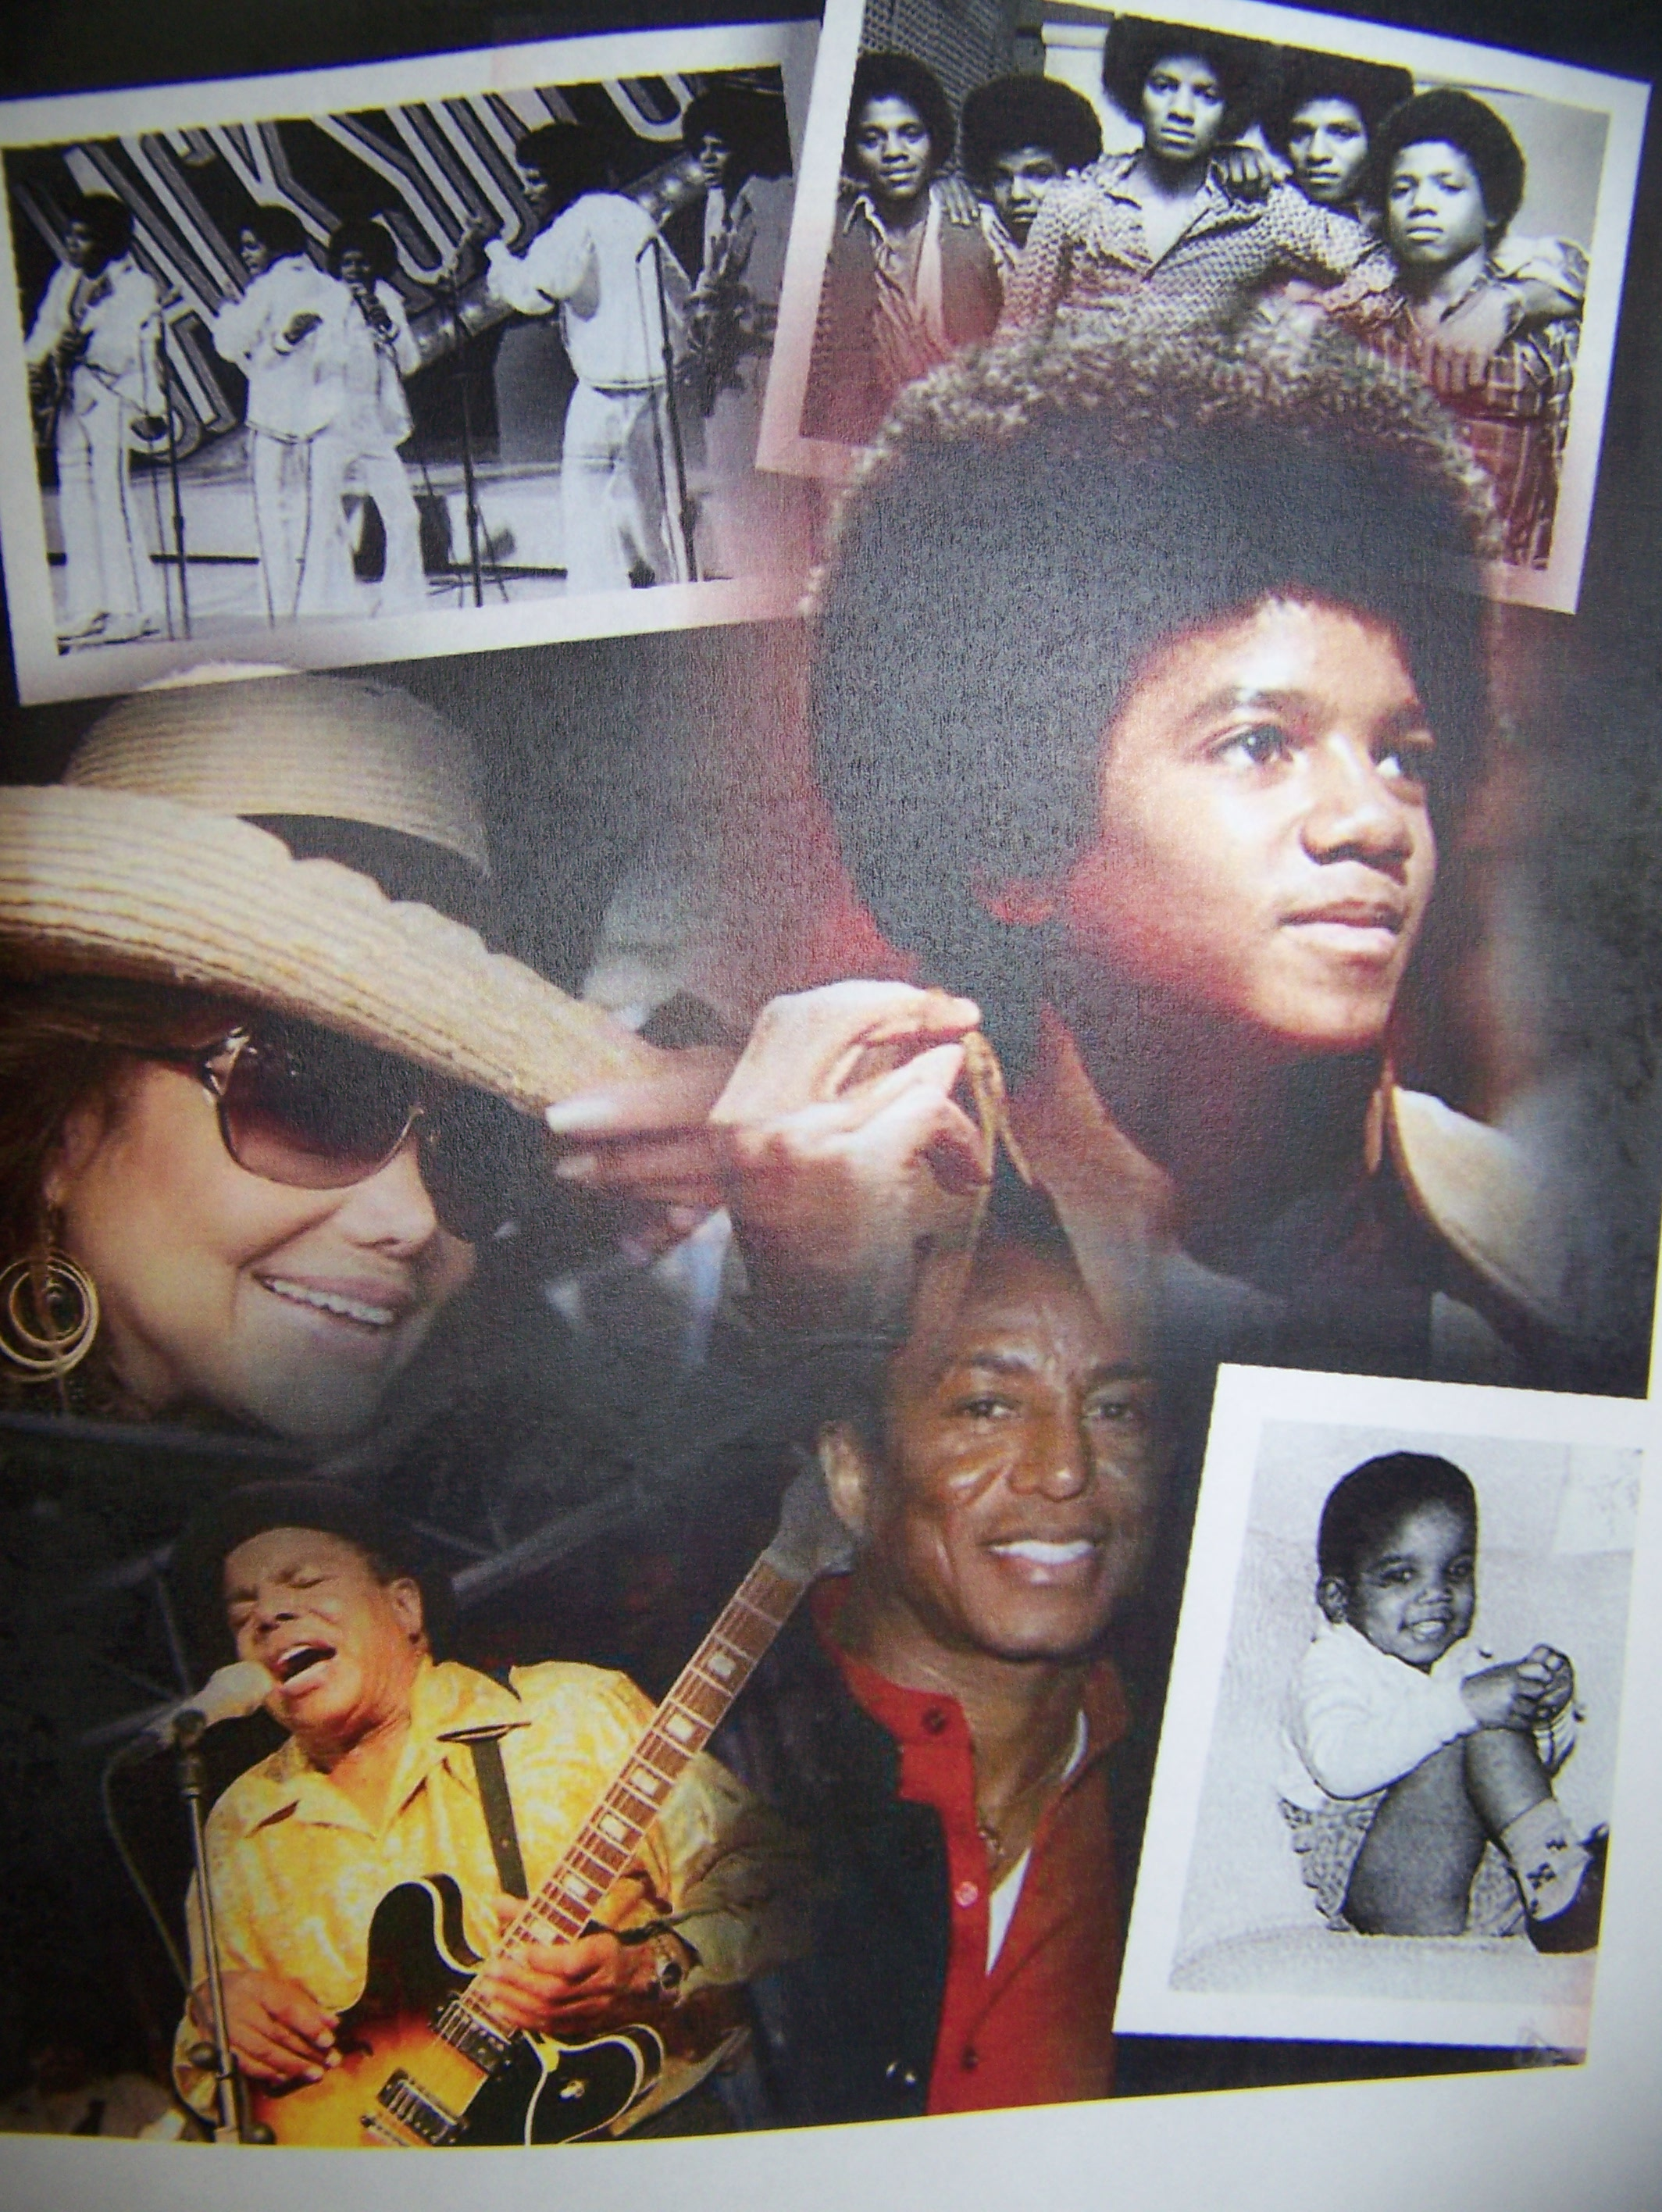 Michael Jackson Photo as a child